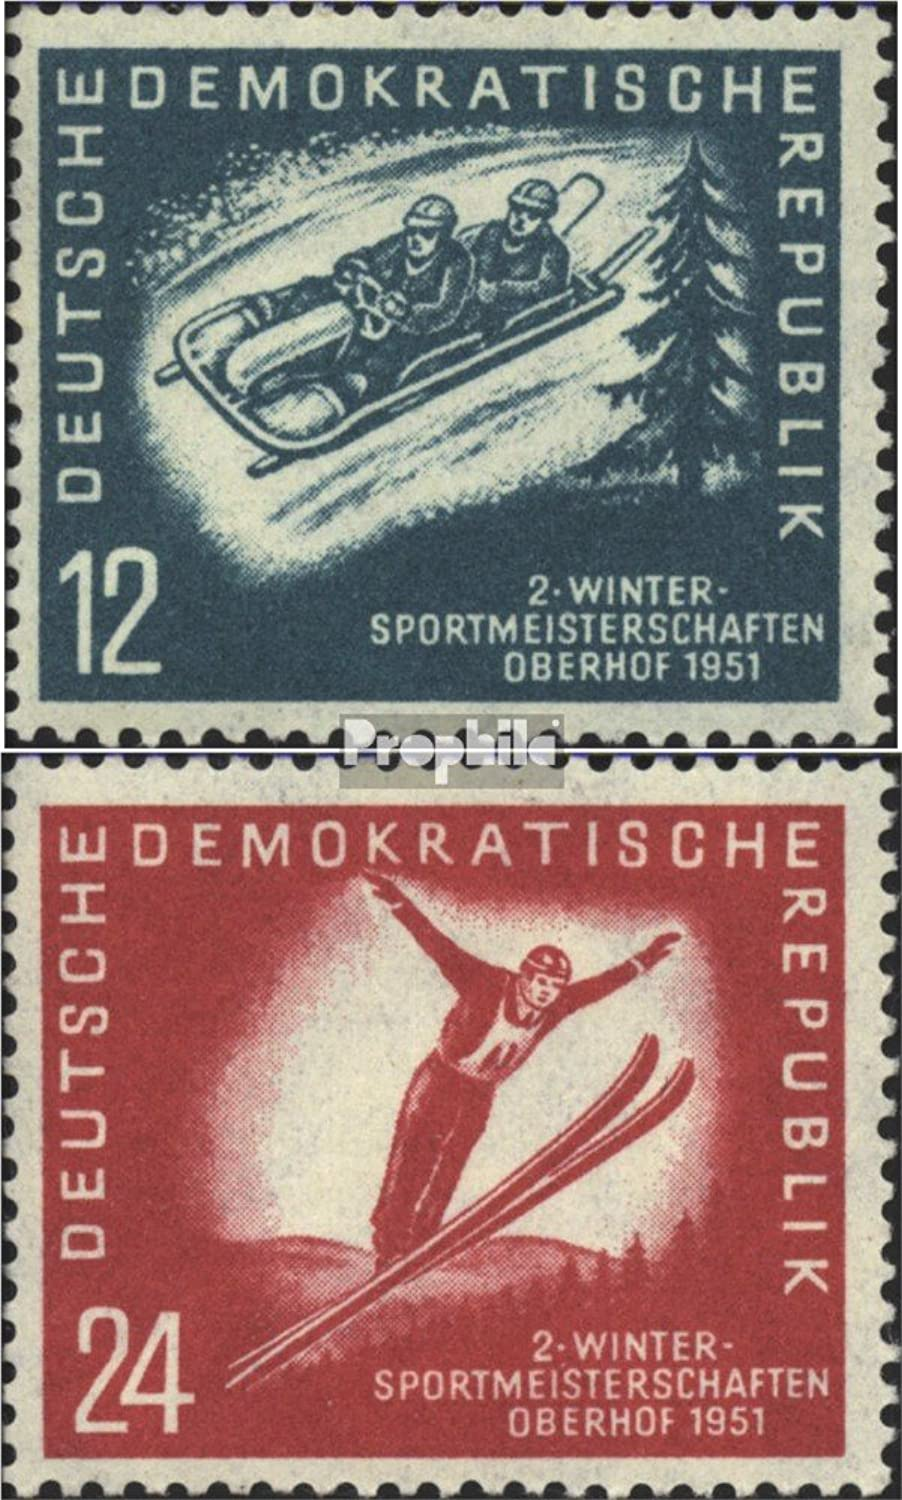 DDR 280-281 (Complete.Issue.) Bedarfsstempel 1951 Winter Sports Championships The DDR (Stamps for Collectors) Winter Sports